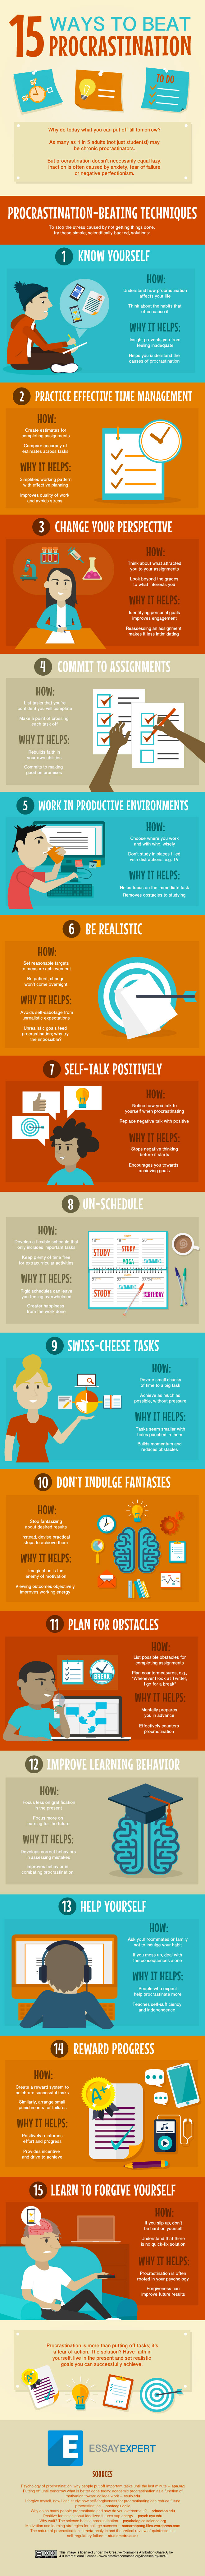 1417534655-15-ways-overcome-procrastination-get-stuff-done-infographic